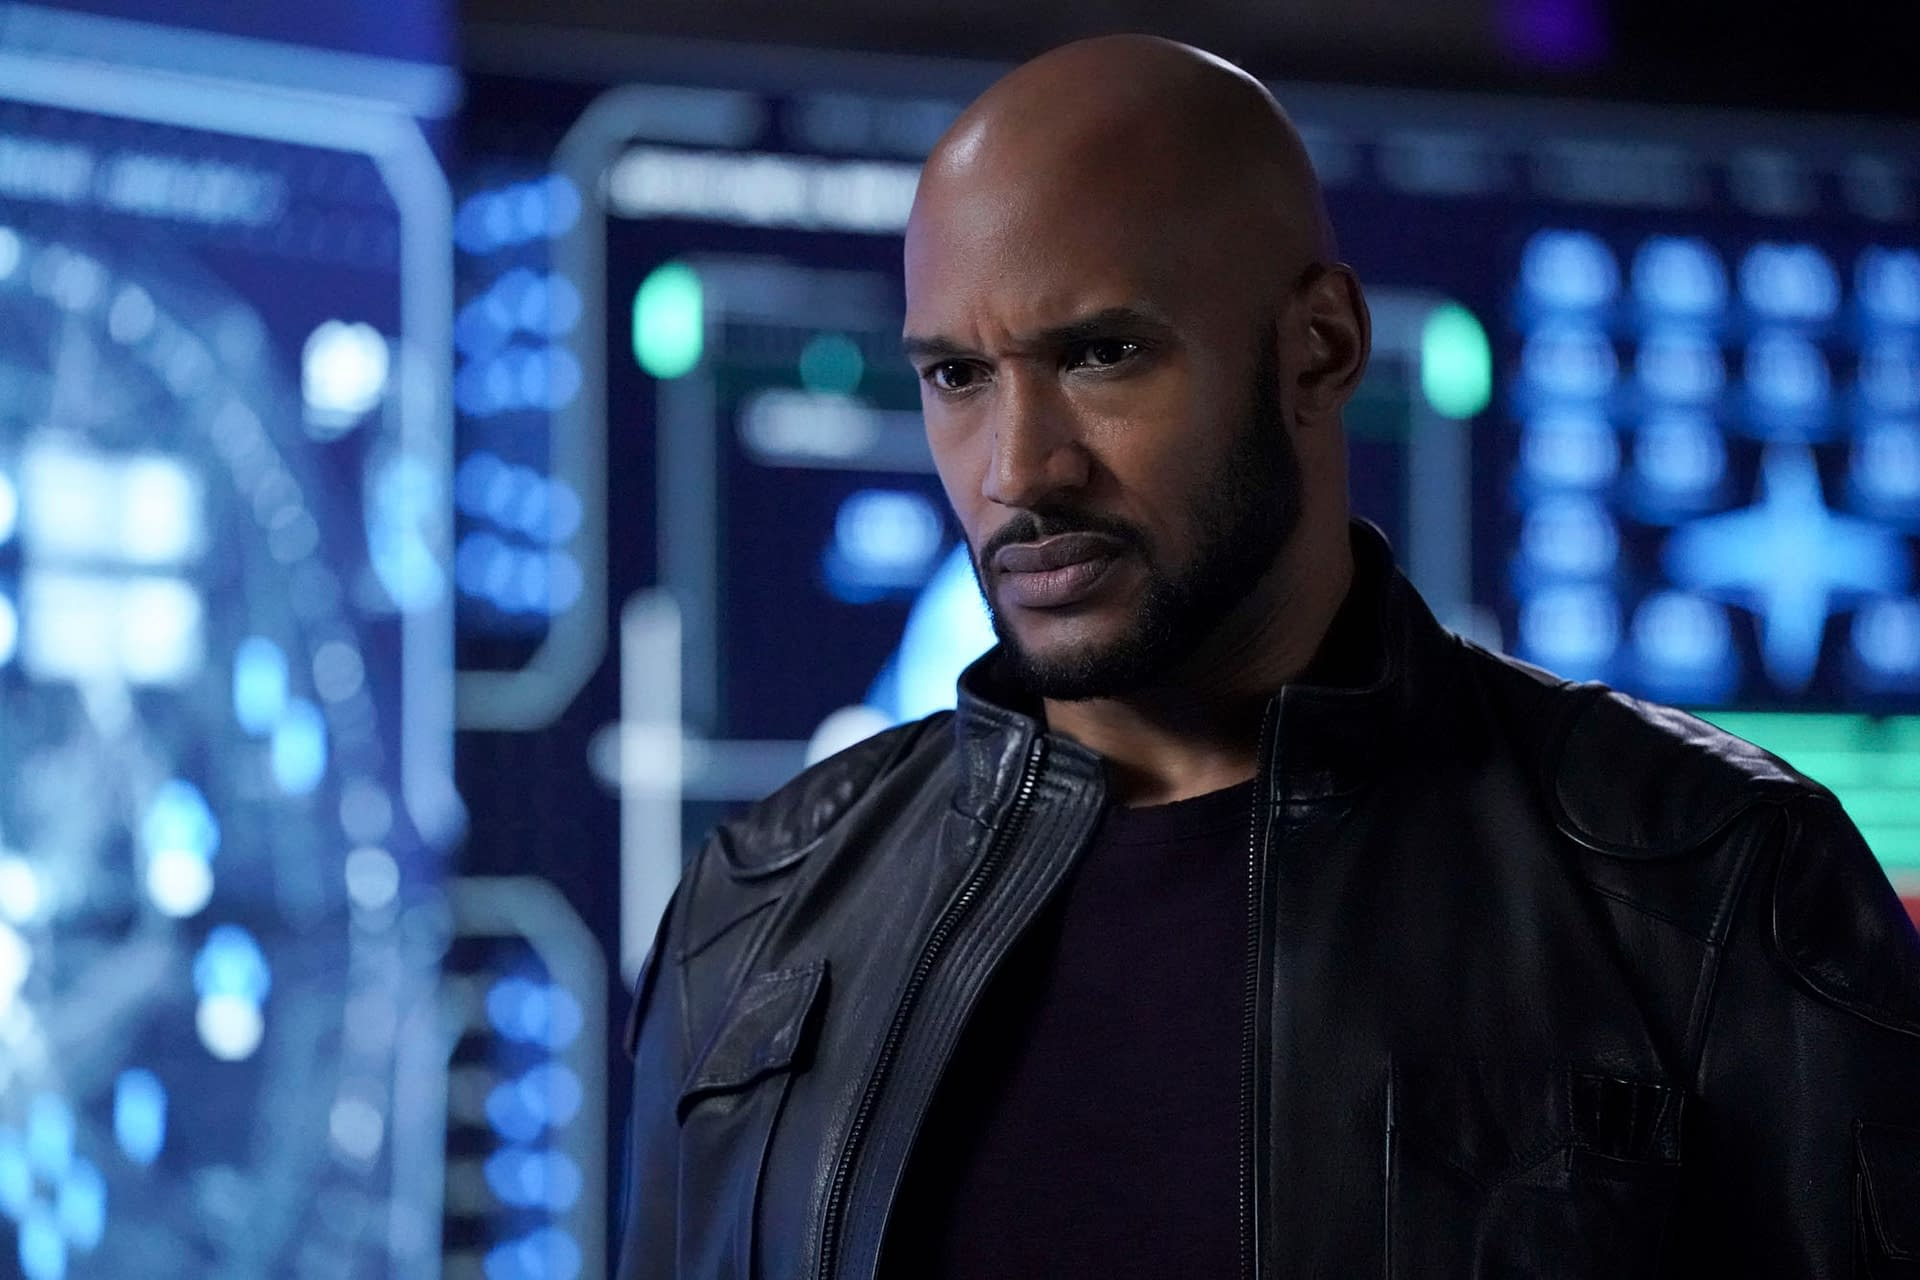 """""""Marvel's Agents of S.H.I.E.L.D."""" Season 6, Episode 7 """"Toldja"""": An Apocalypse to Come Home To [PREVIEW]"""